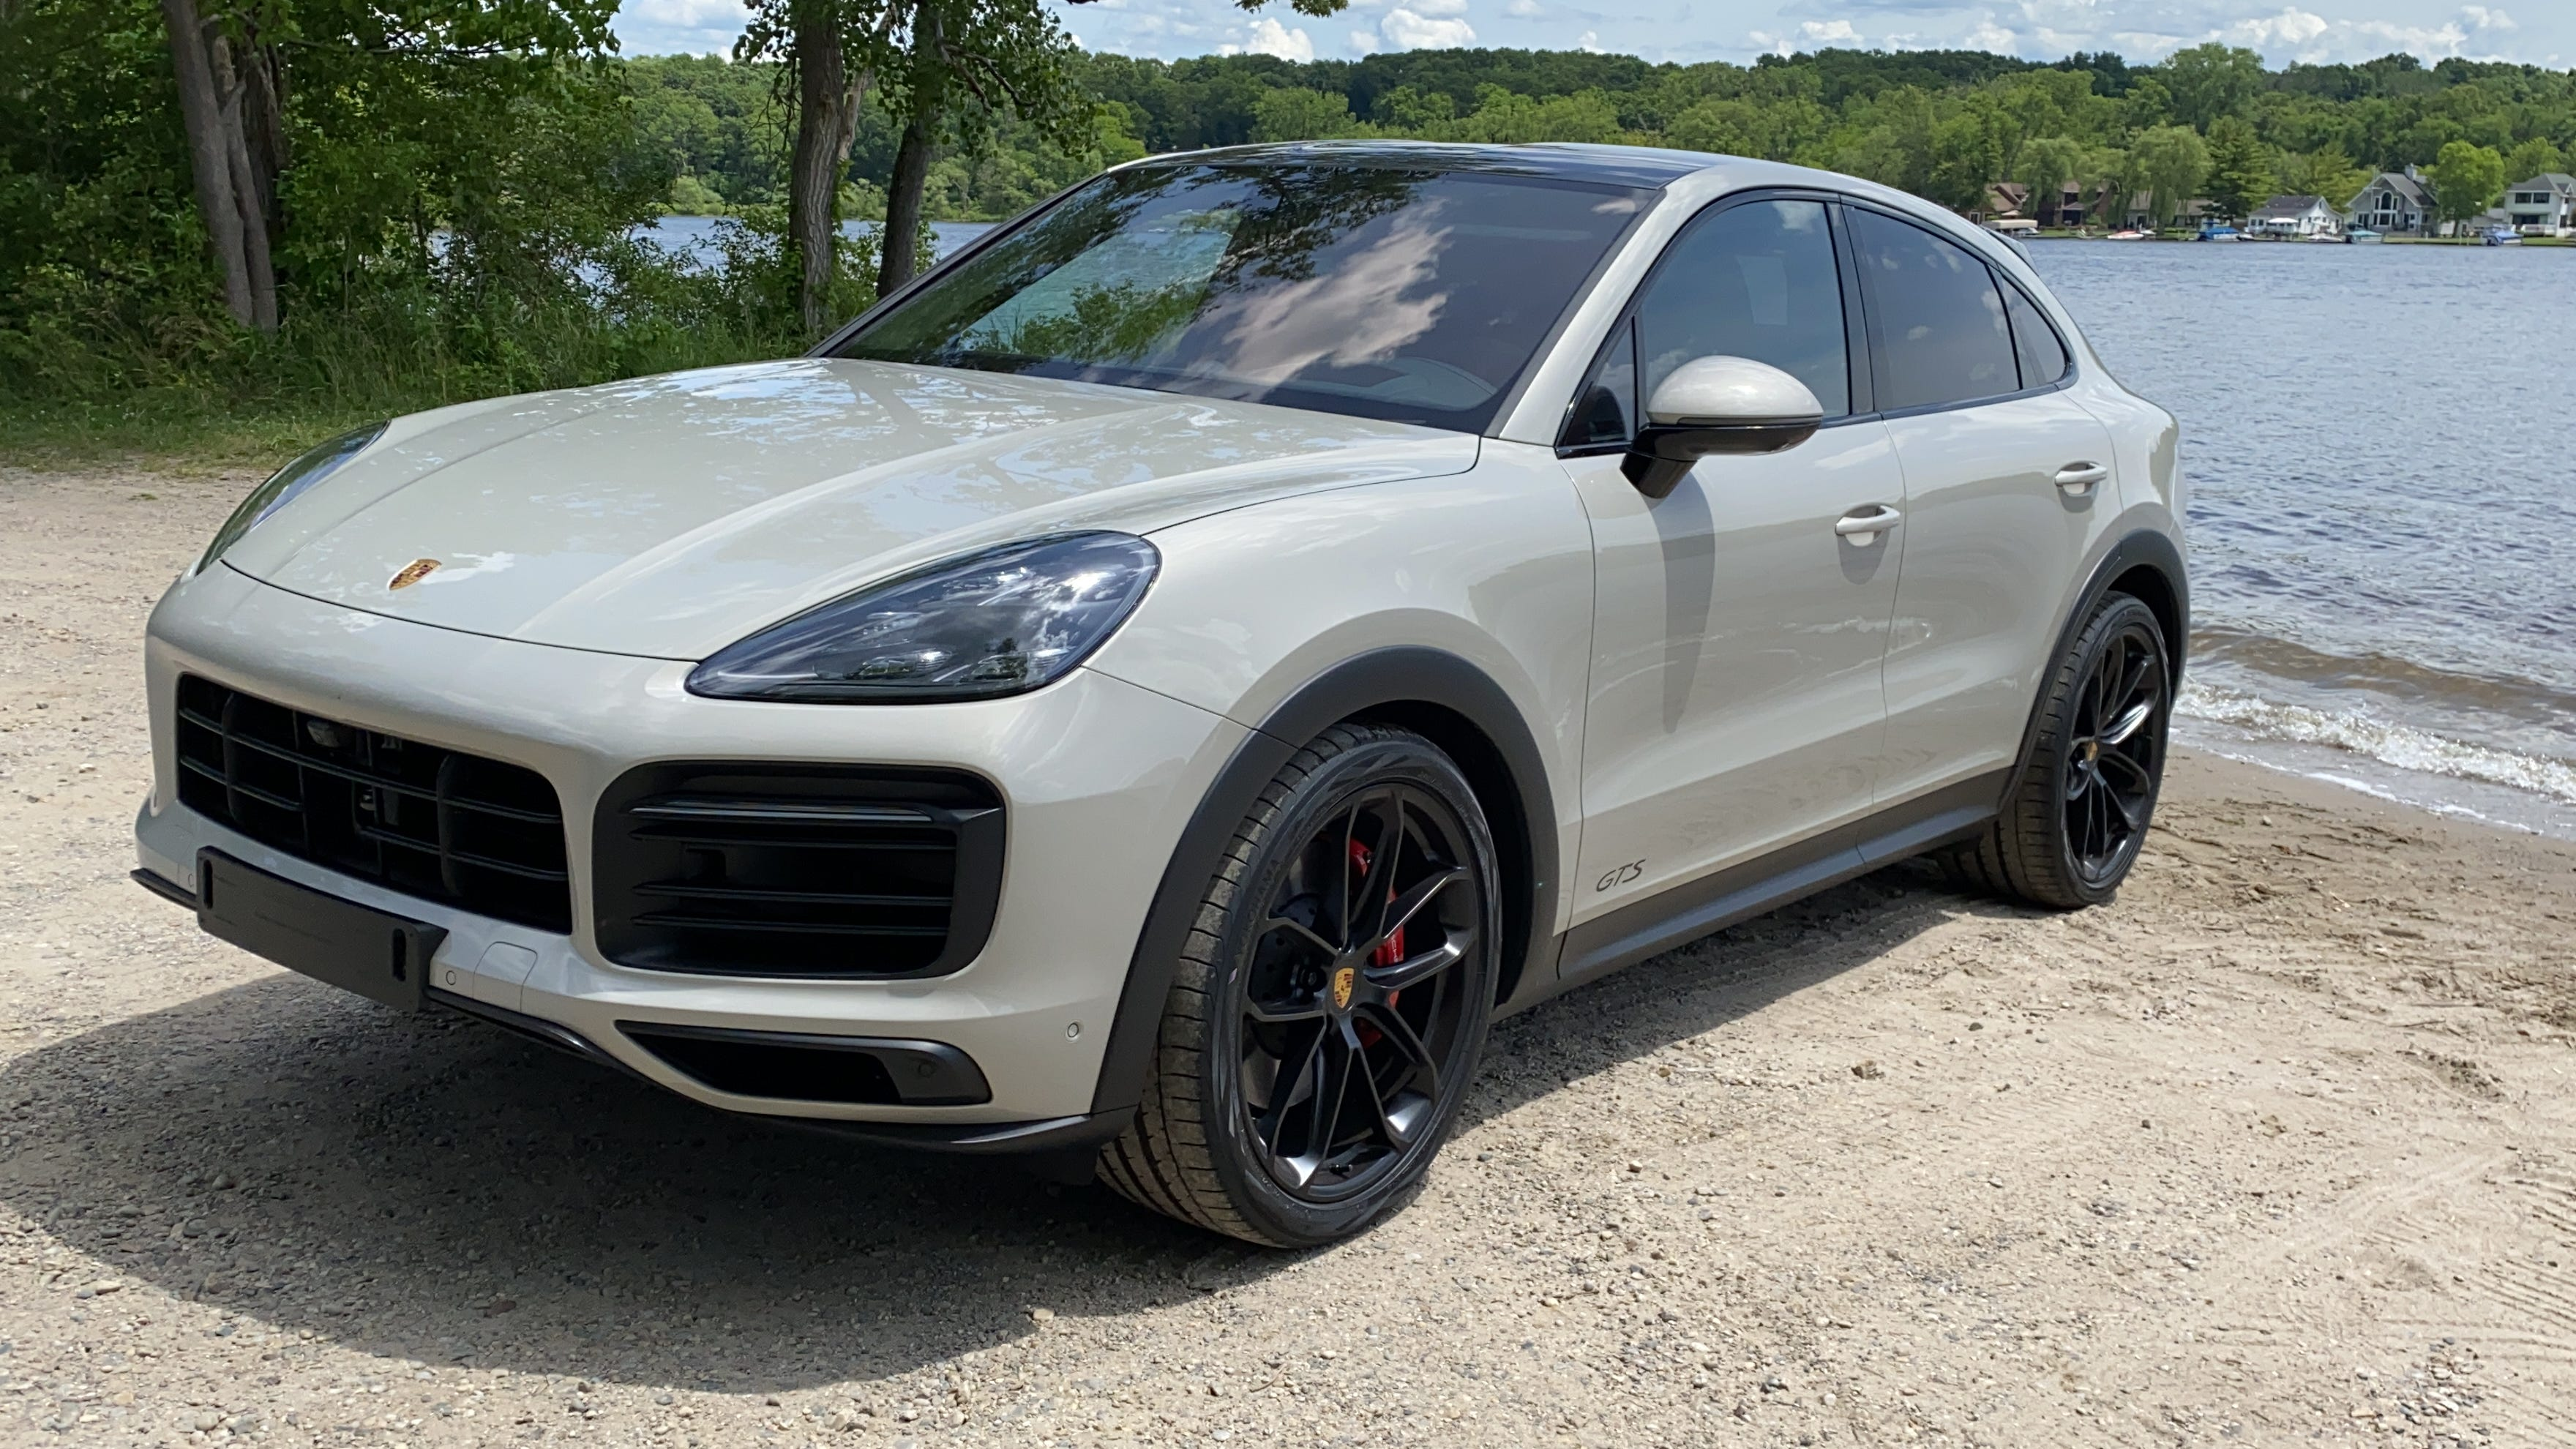 2021 Porsche Cayenne Gts Suv Spices Up Luxury Performance Race